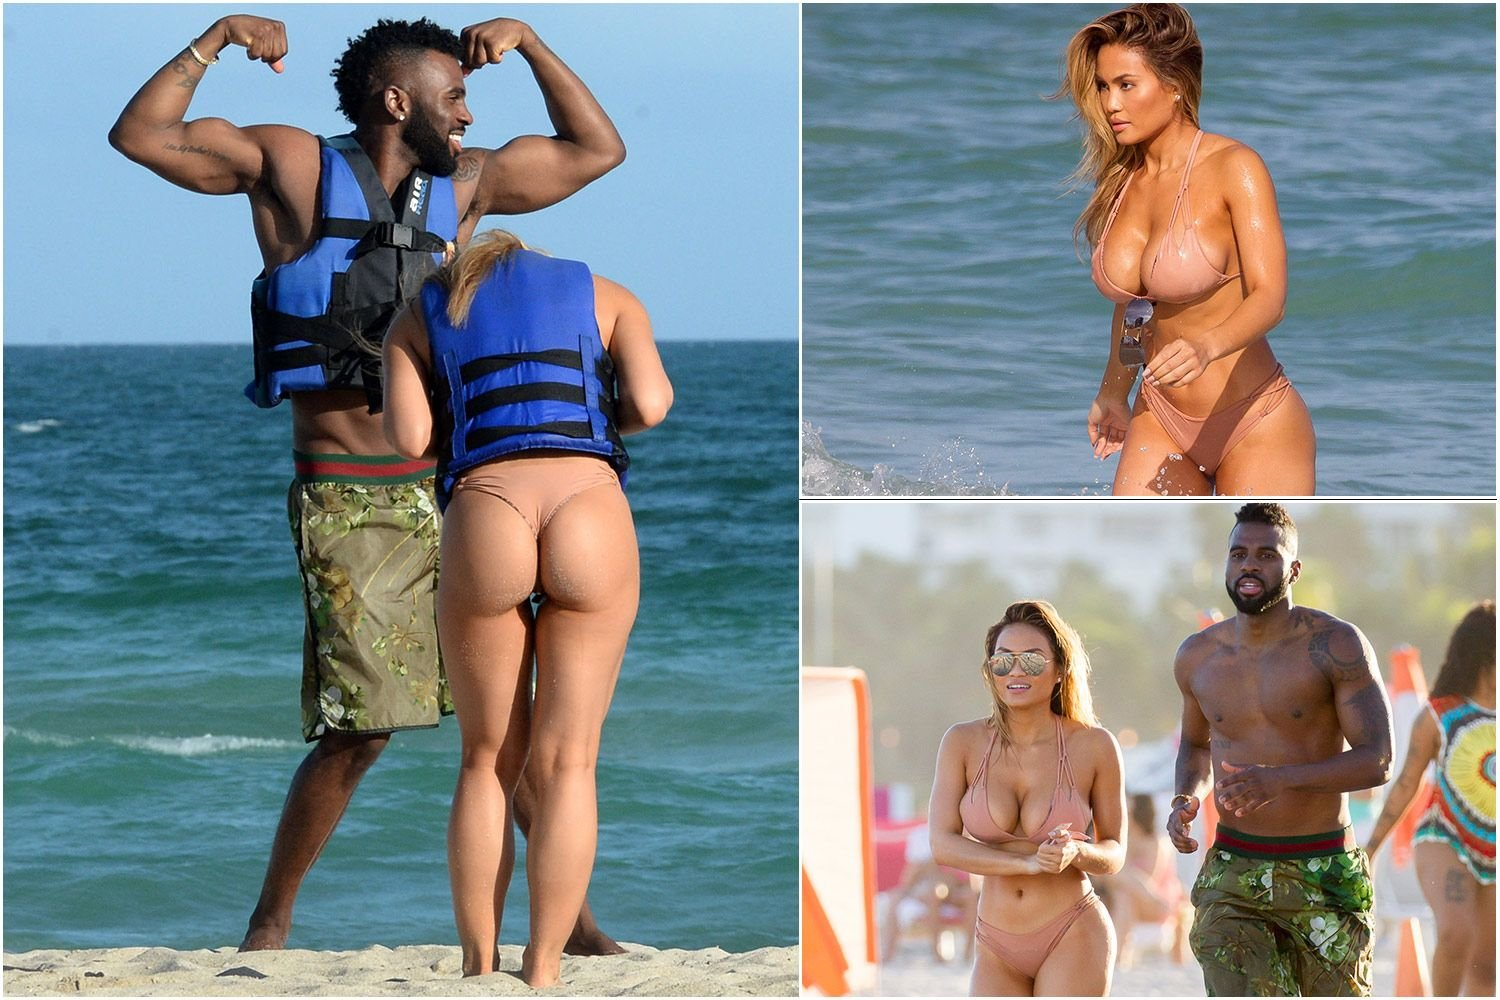 Share daphne joy nude pity, that